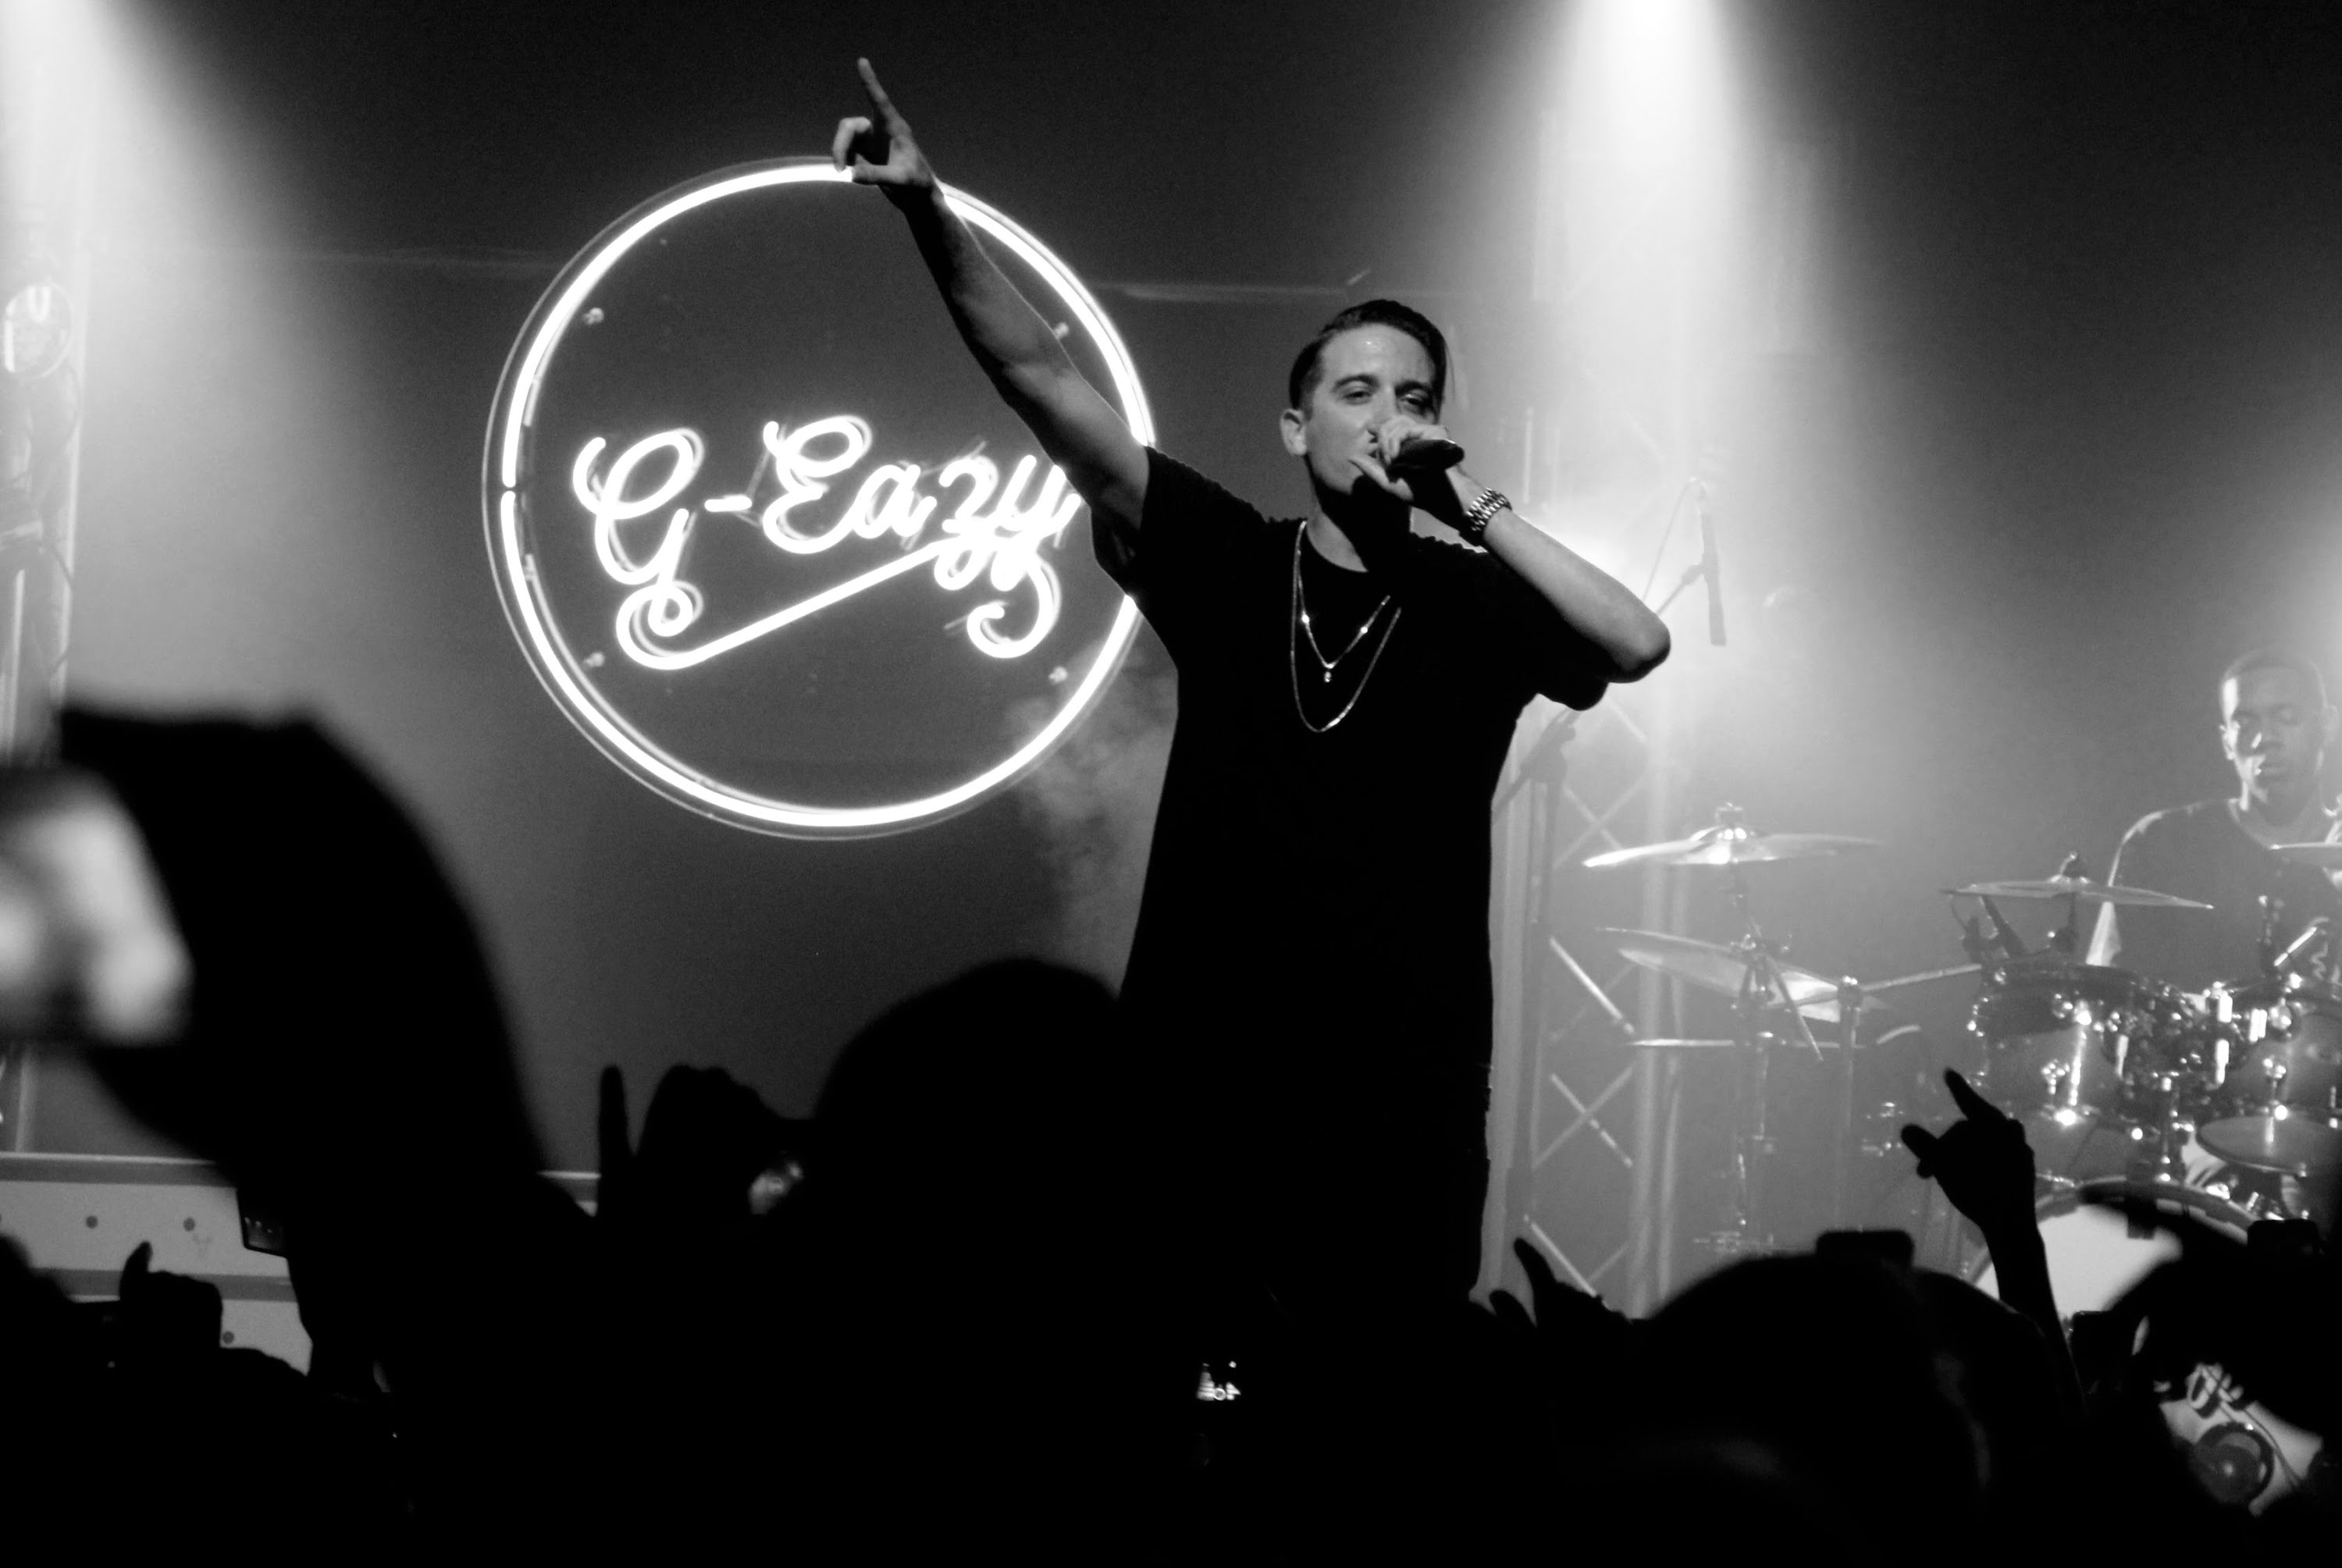 G Eazy Summer In December New Music Conversations About Her